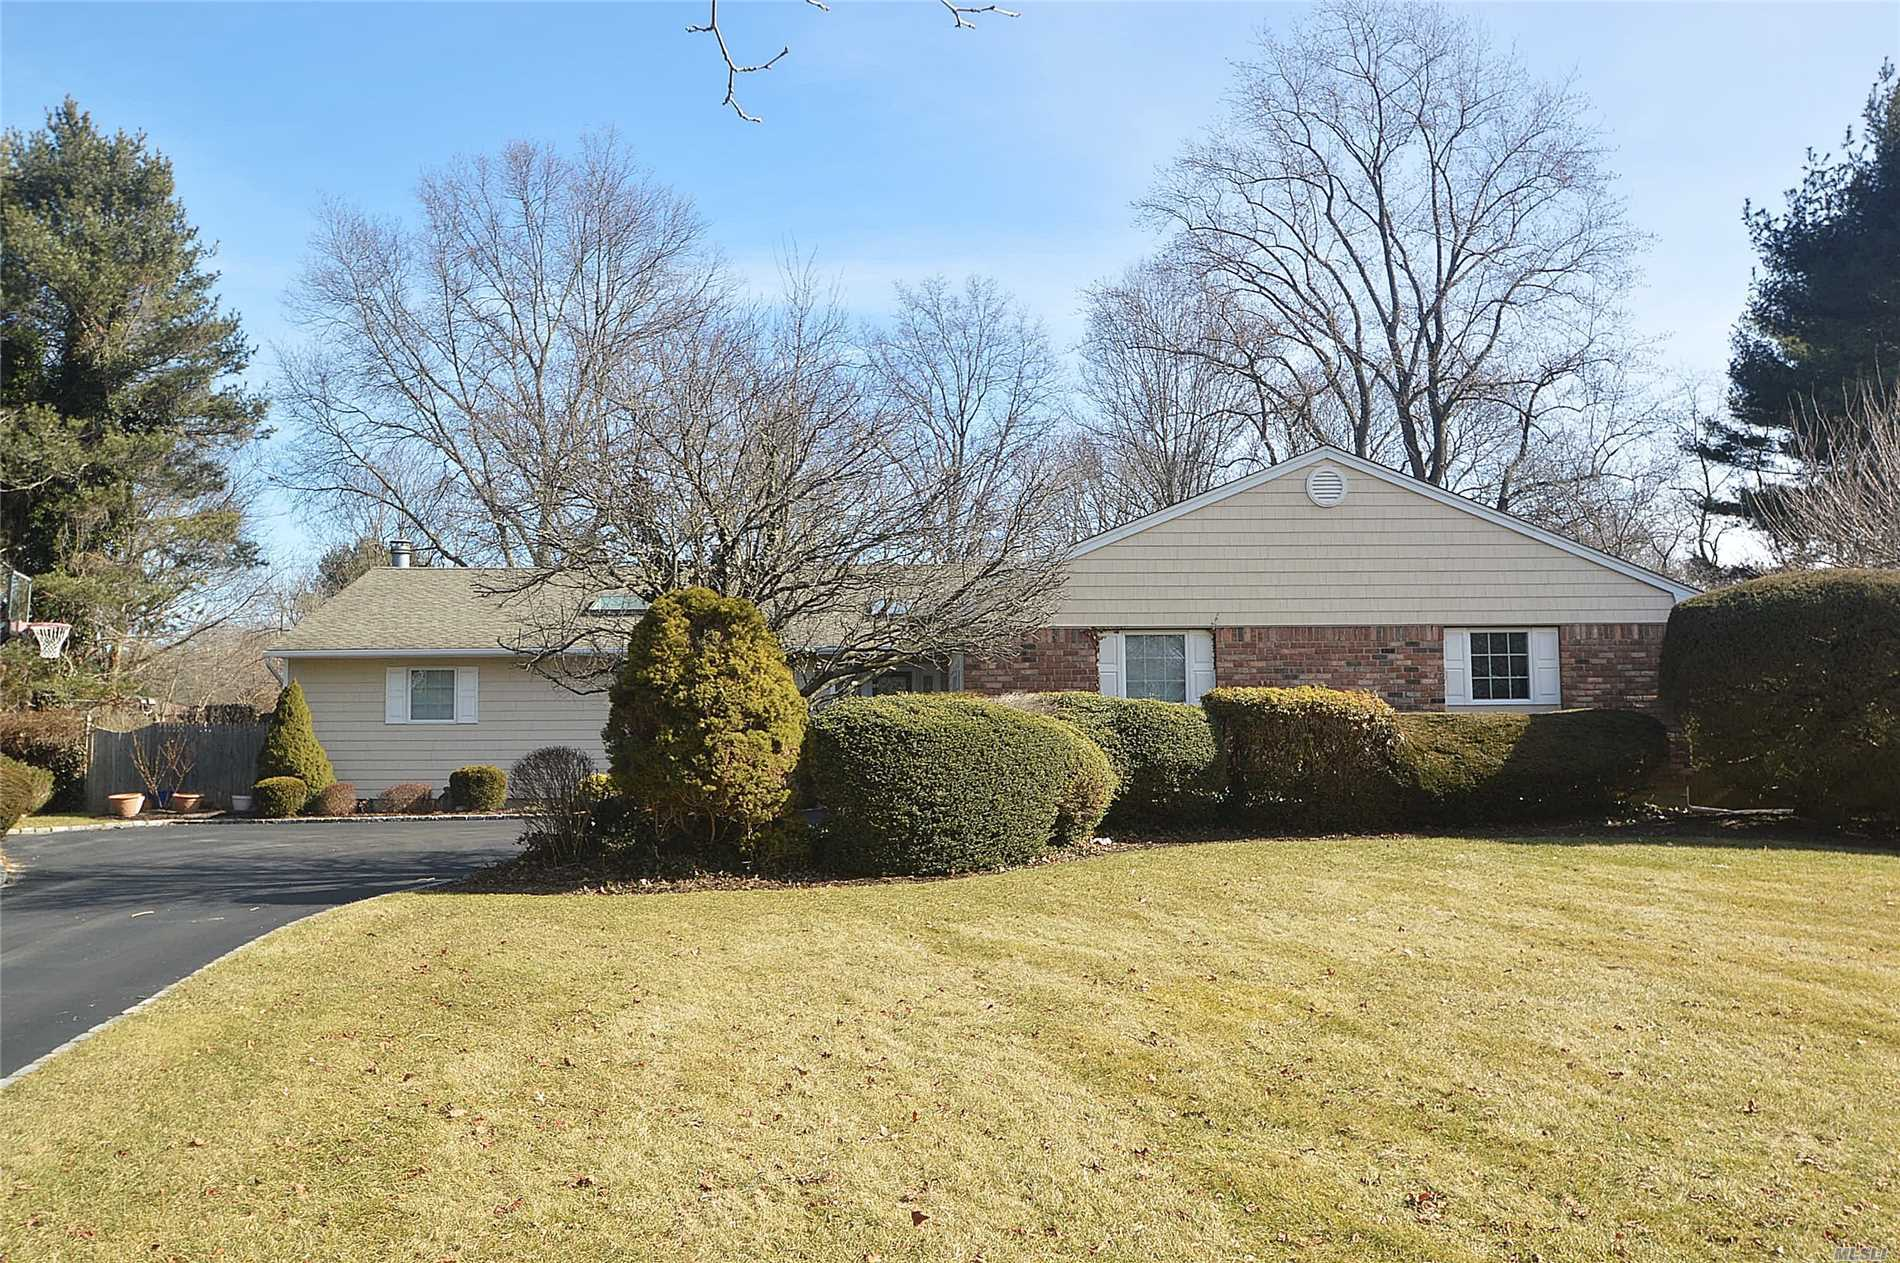 Beautiful Ranch On A Quiet Cul-De-Sac. Spacious Lr, Fdr, Fam Rm W/Raised Ceilings. Mast Suite W/Mast Bth, Huge Closet, Floor To Ceiling Windows & Sliders To Deck. Updated Eik W/Wood Cabinets, Granite Counters & Center Isle. Updated Fbth & Powder Rm. Gleaming Hrwd Flrs Thru. Fully Fenced Fabulous 1 Acre Property, Ig Pool (Sold As Is). New Cac Compressor, New Driveway.